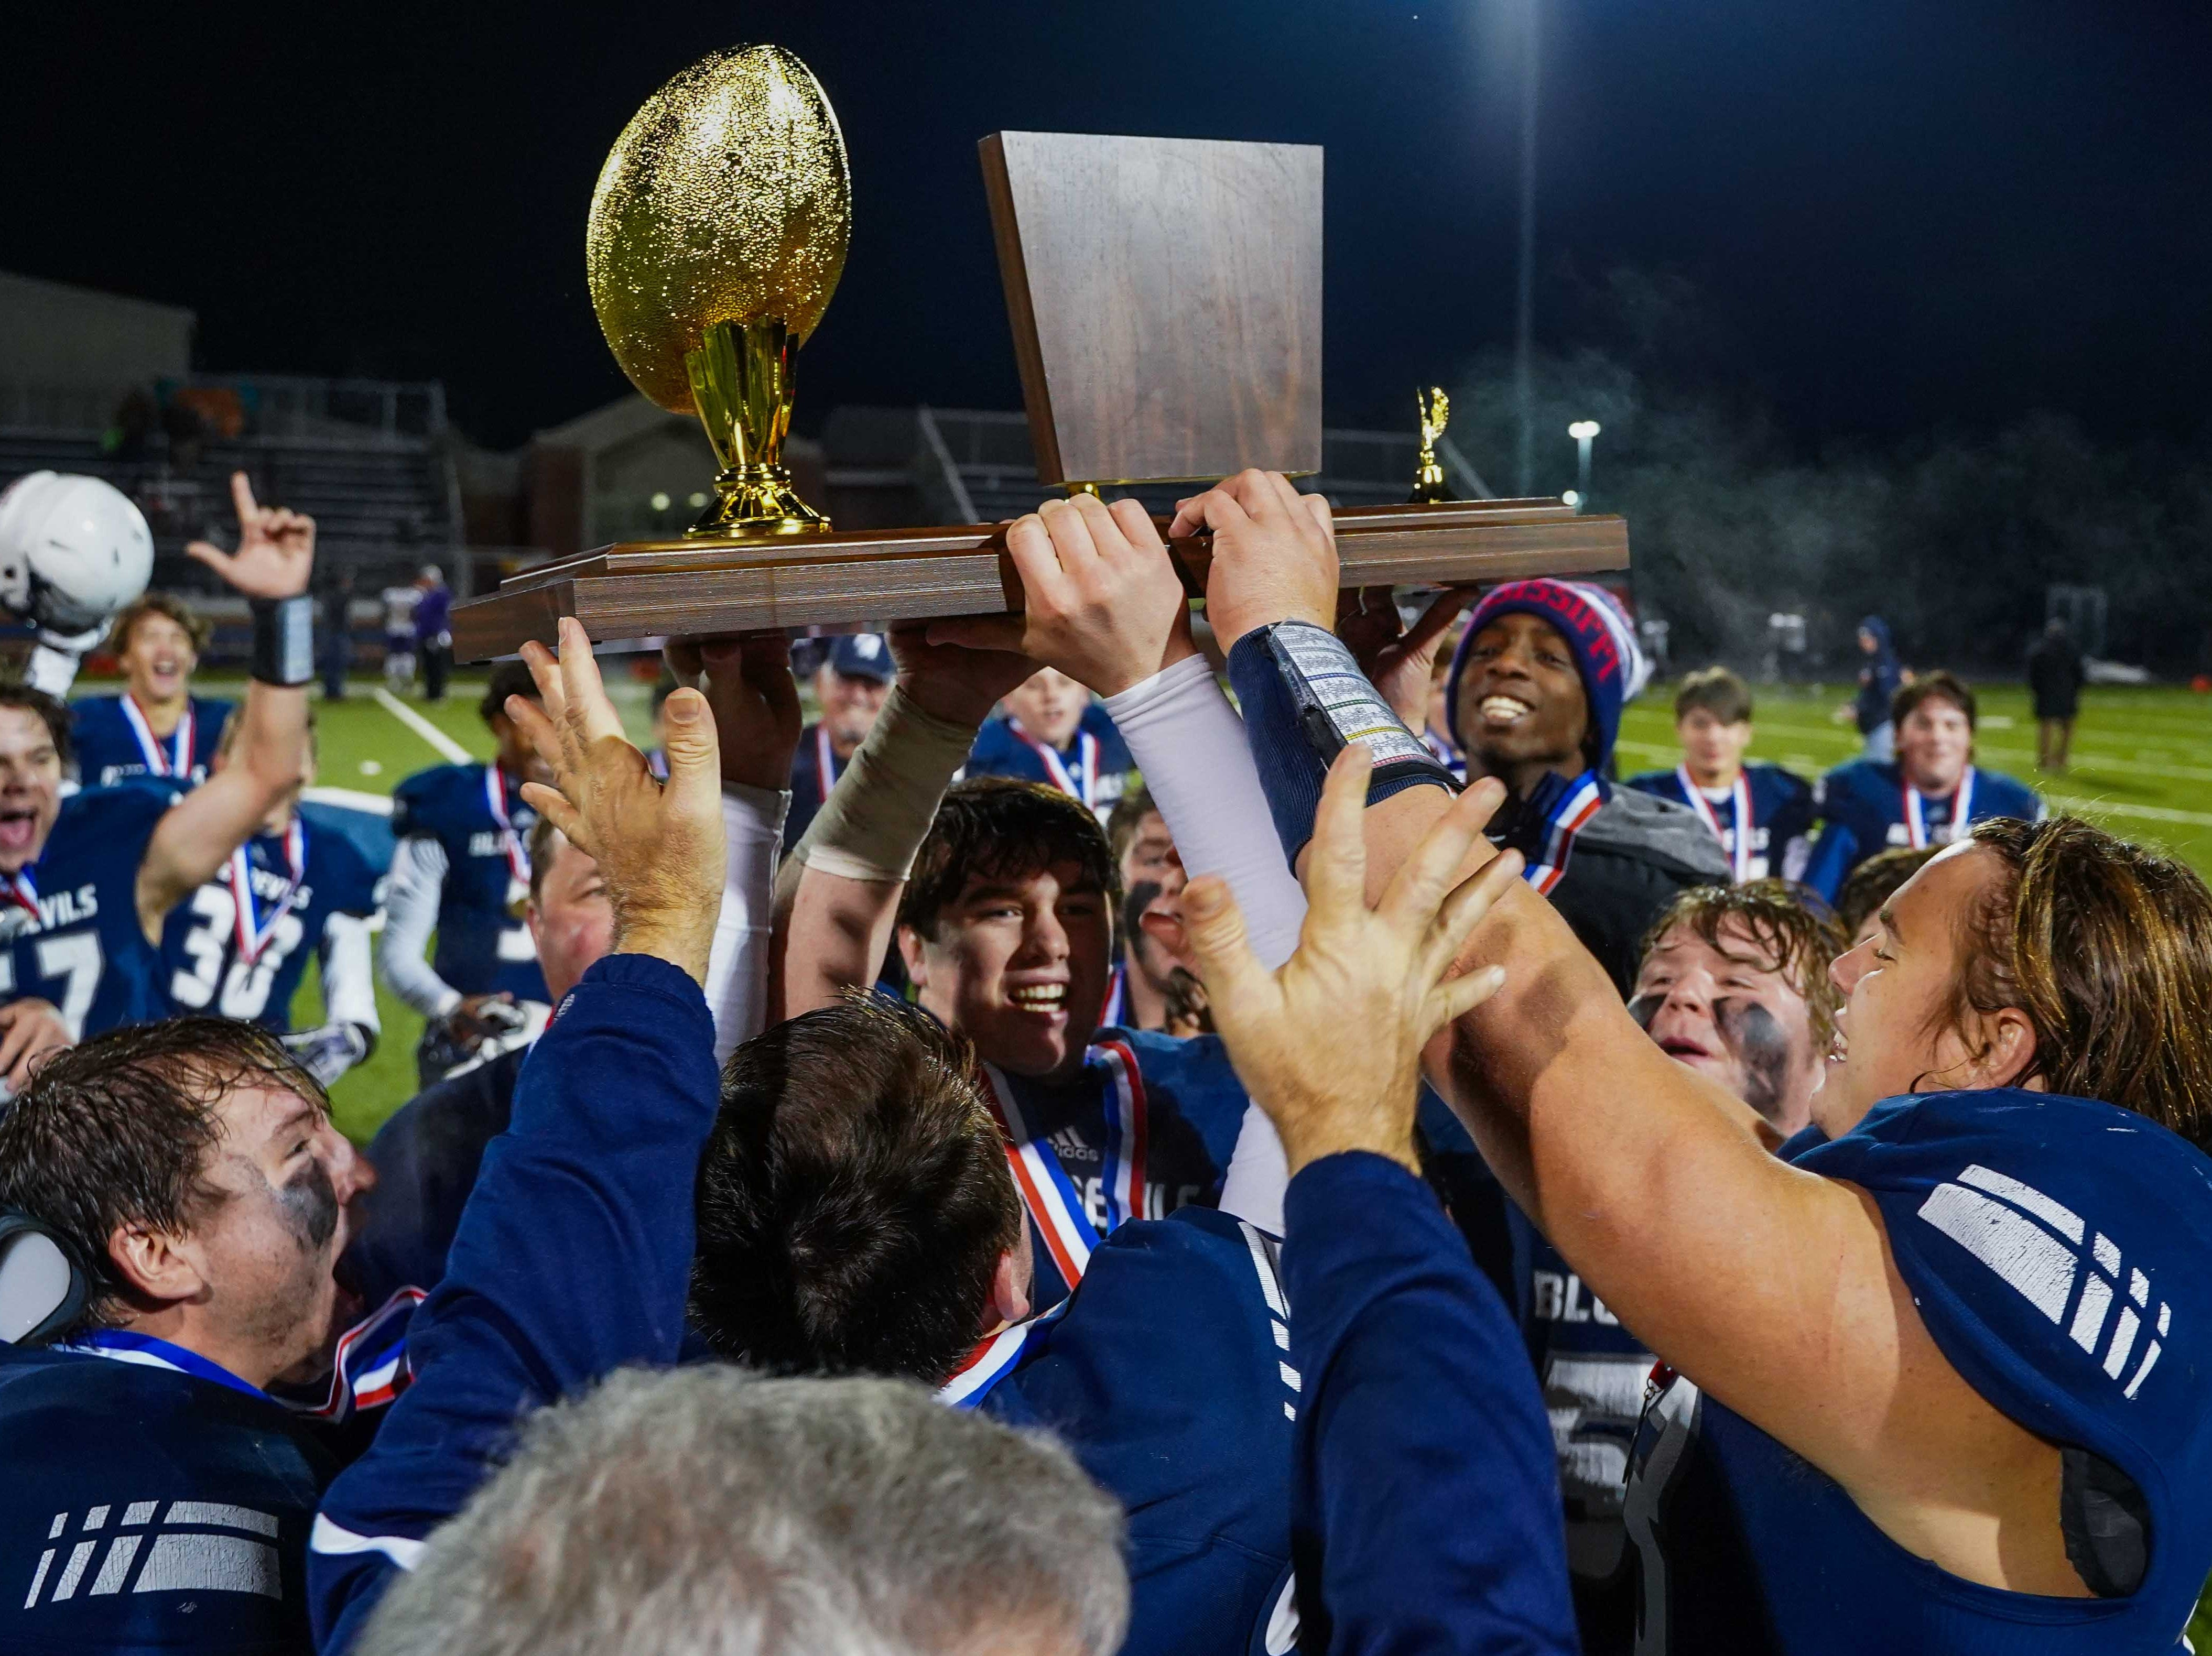 Tunica players celebrate wih the trophy following their 46-12 win over Union Christian in the MAIS Class A Championship Football game held at Jackson Academy in Jackson, MS, Thursday November 15, 2018.(Bob Smith-For The Clarion Ledger)